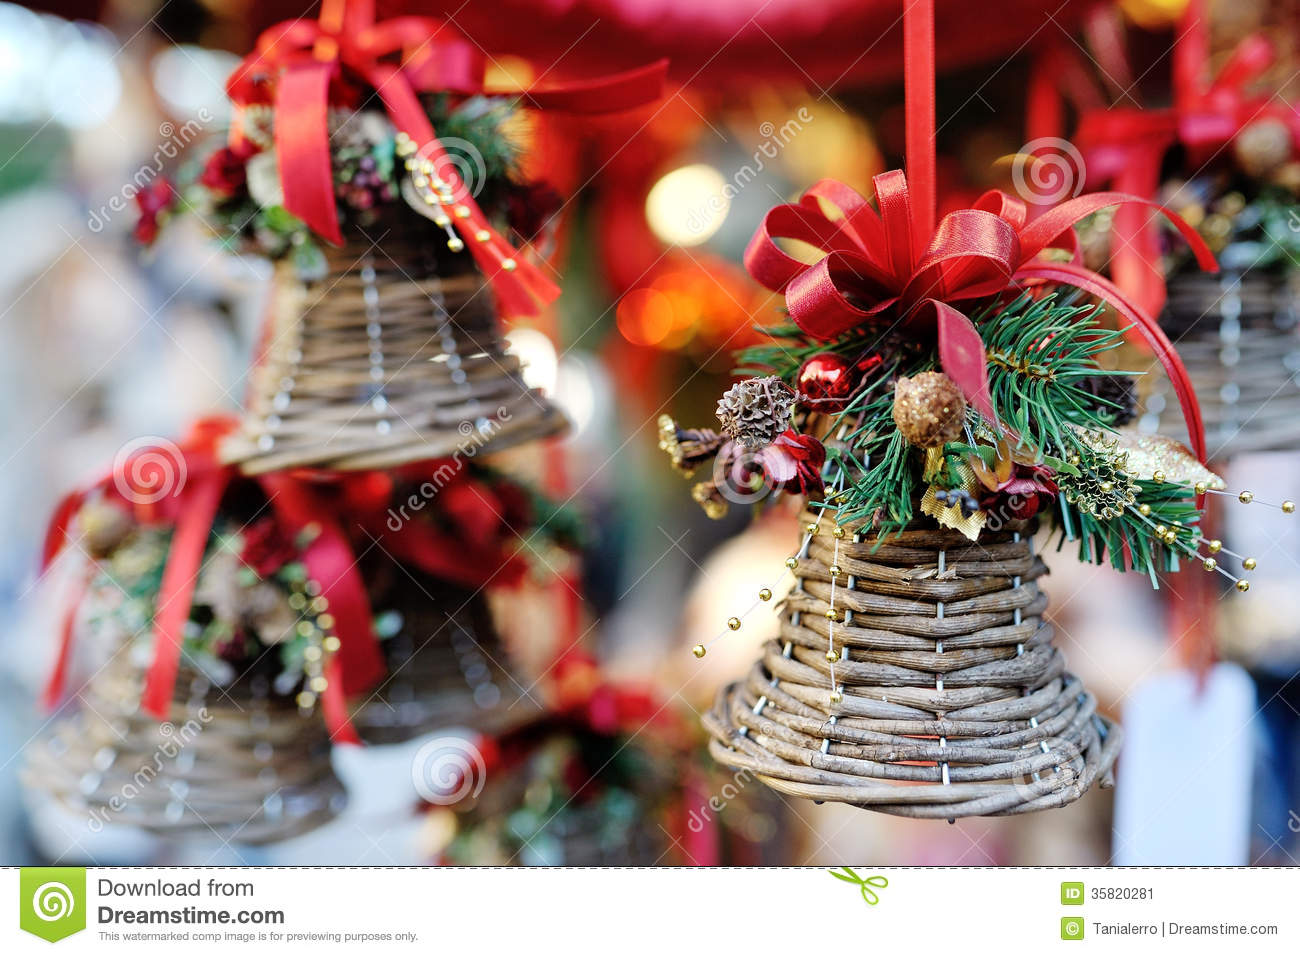 decoracao arvore de natal vermelha:Christmas Tree Decorations with Ribbons